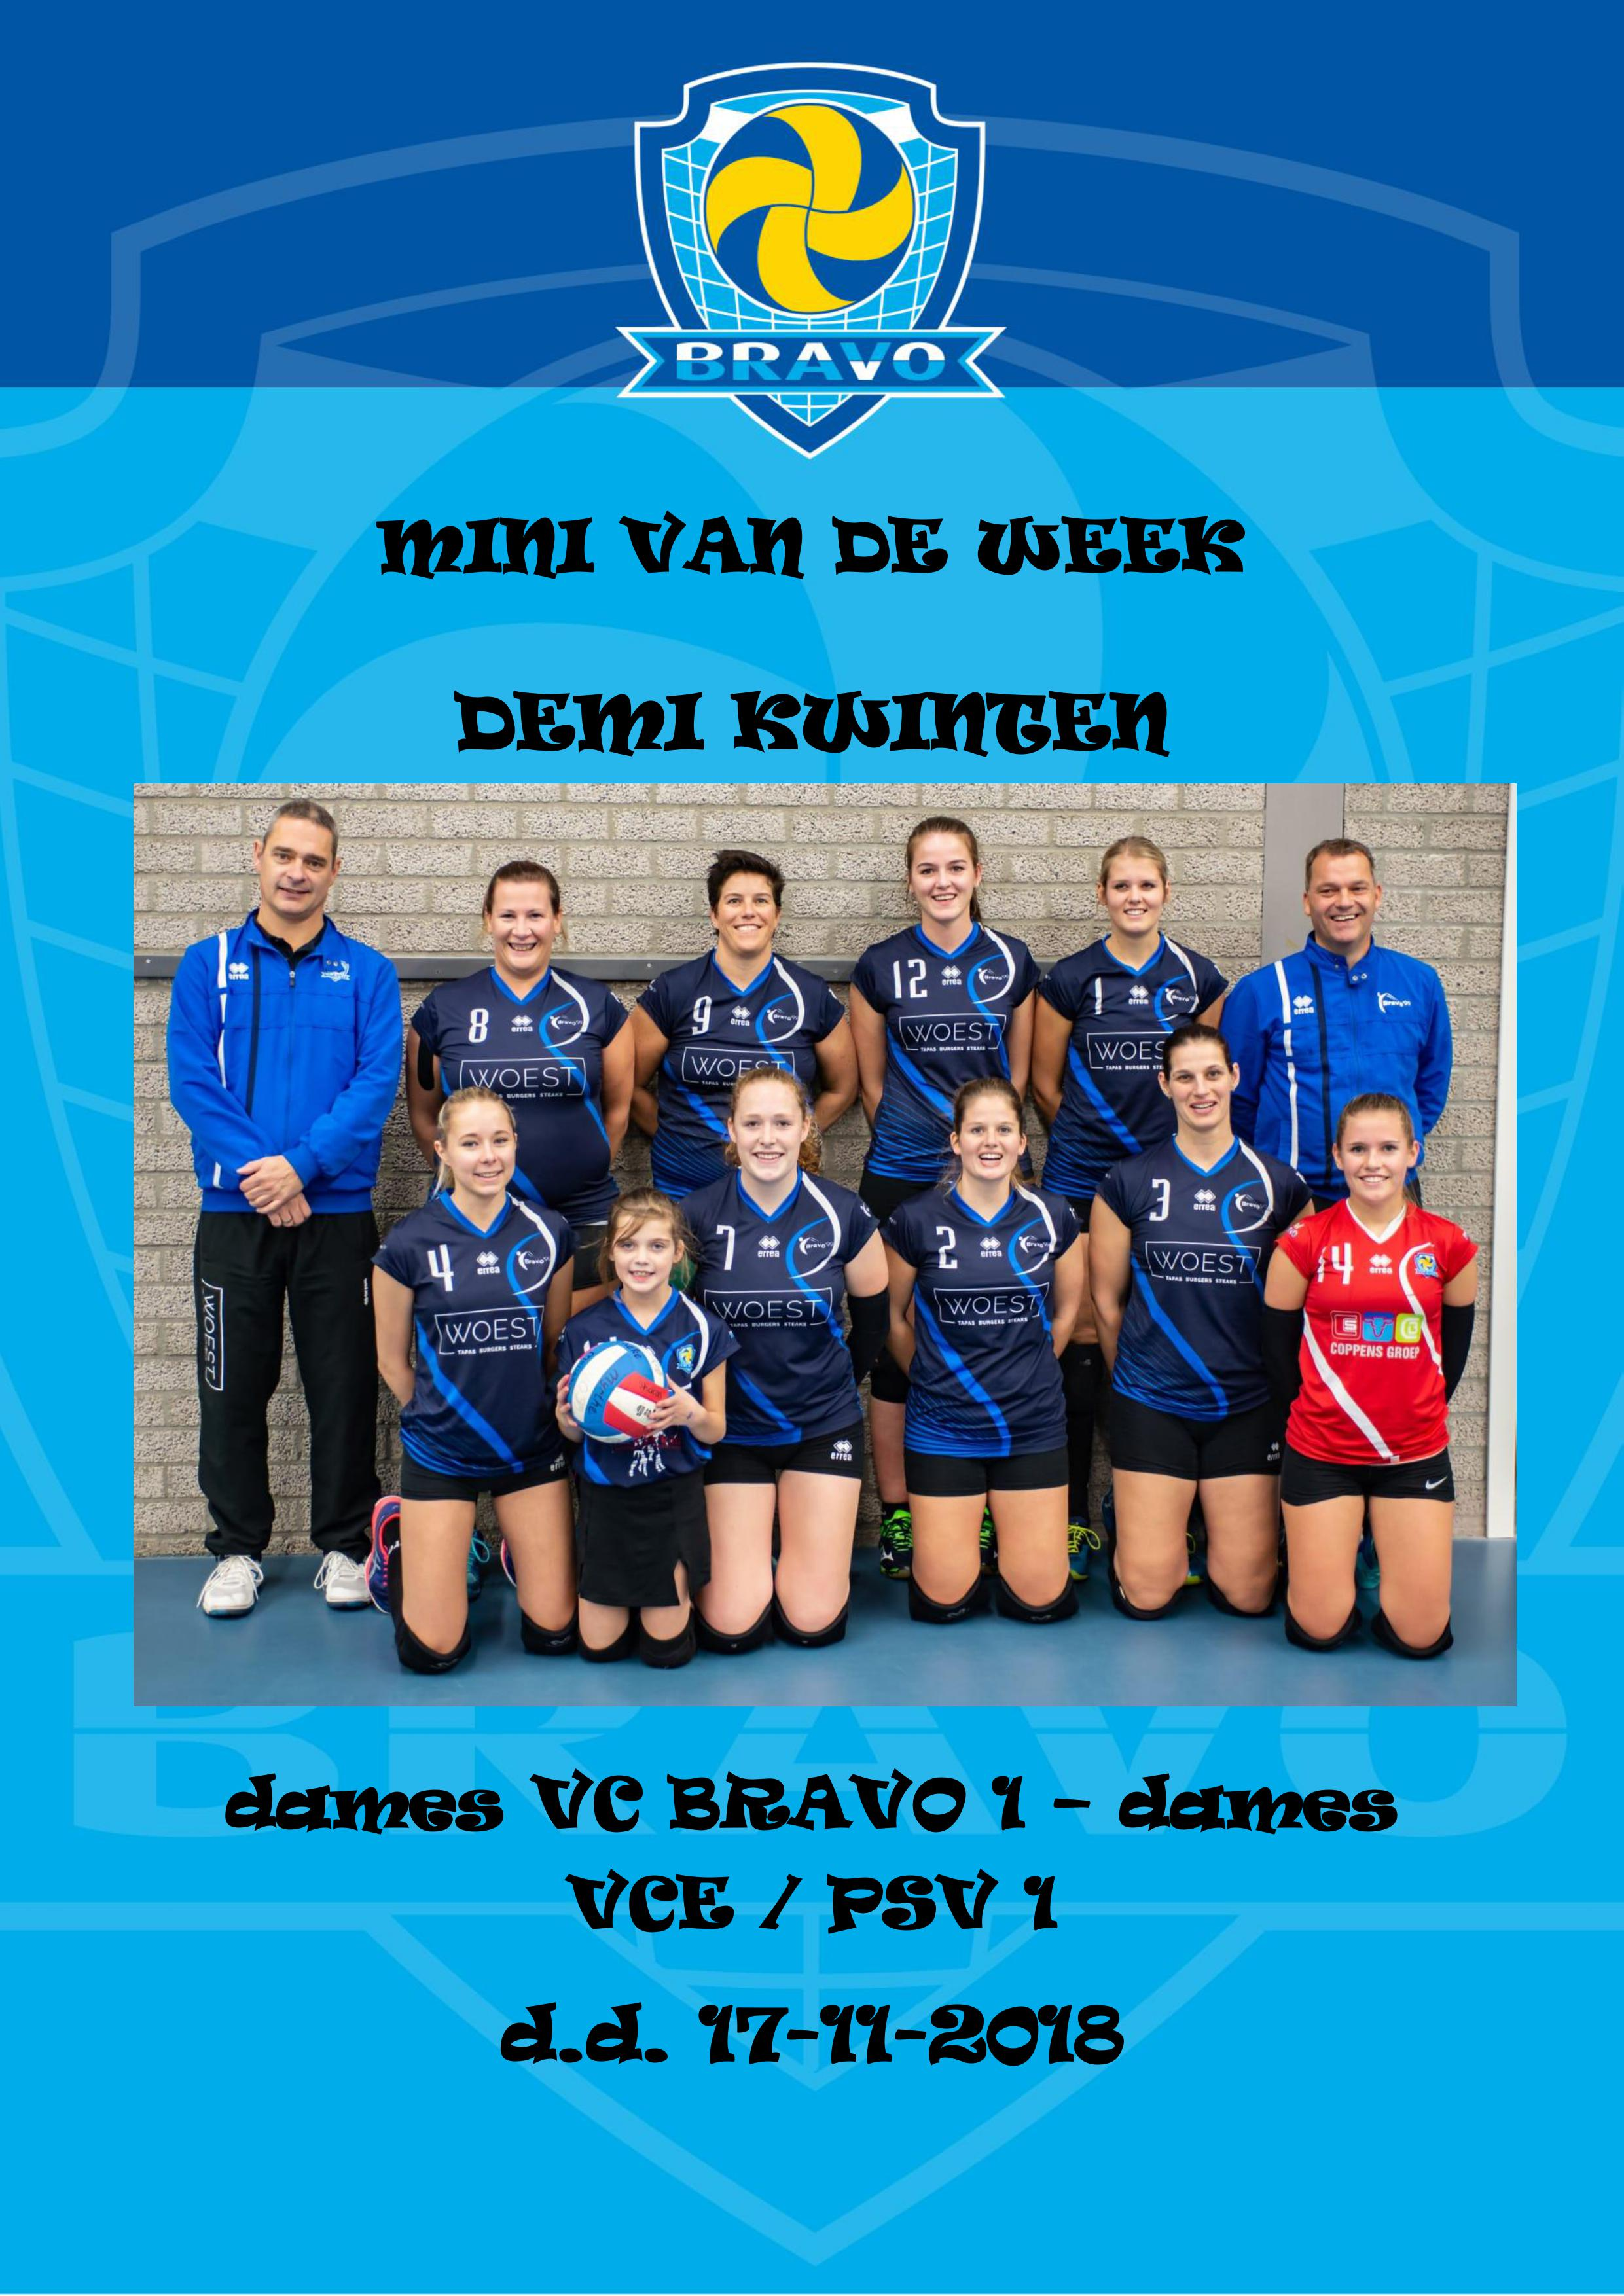 MINI VAN DE WEEK dames 17-11-2018